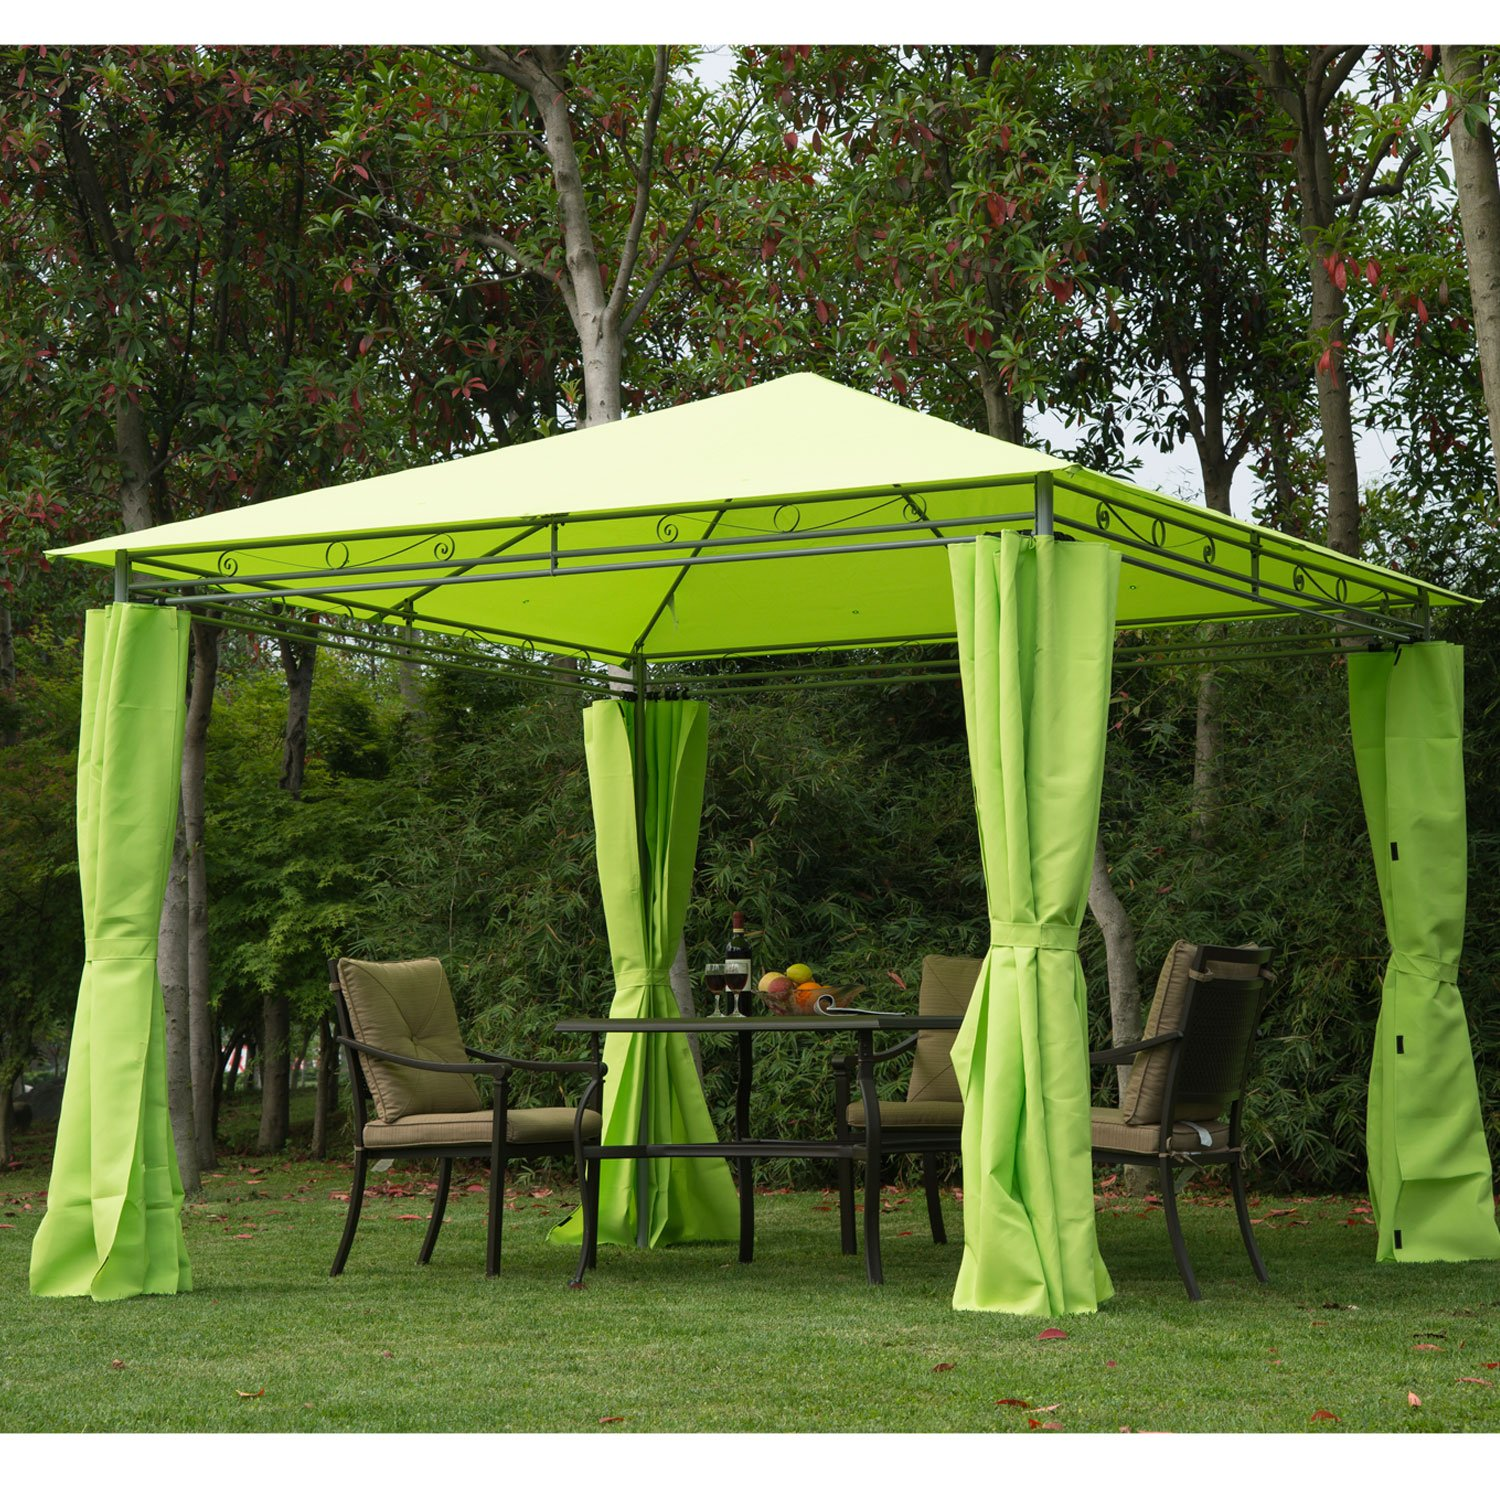 Steel Outdoor Shelters : Outdoor garden metal gazebo marquee patio party tent